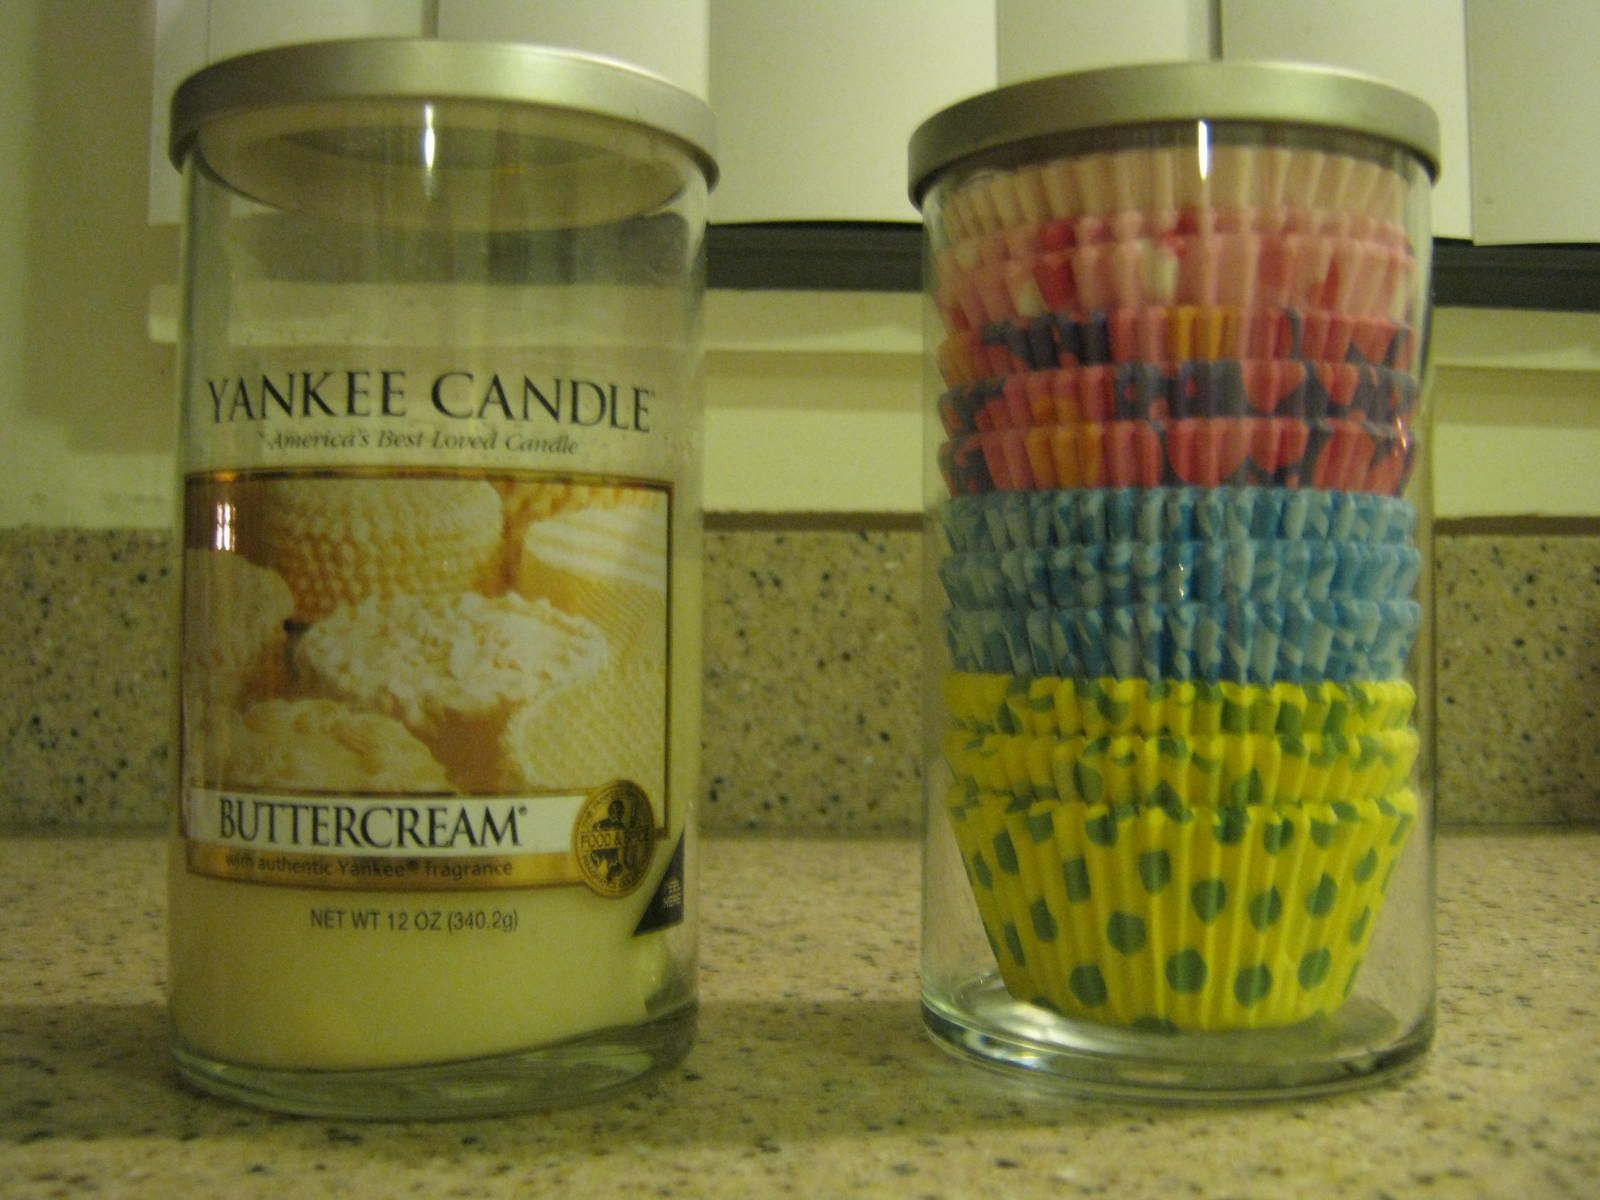 Turn A Yankee Candle Perfect Pillar Jar Into A Cupcake Liner Holder When The Candle Is Finished Em Candle Jars Crafts Repurpose Candle Jars Reuse Candle Jars